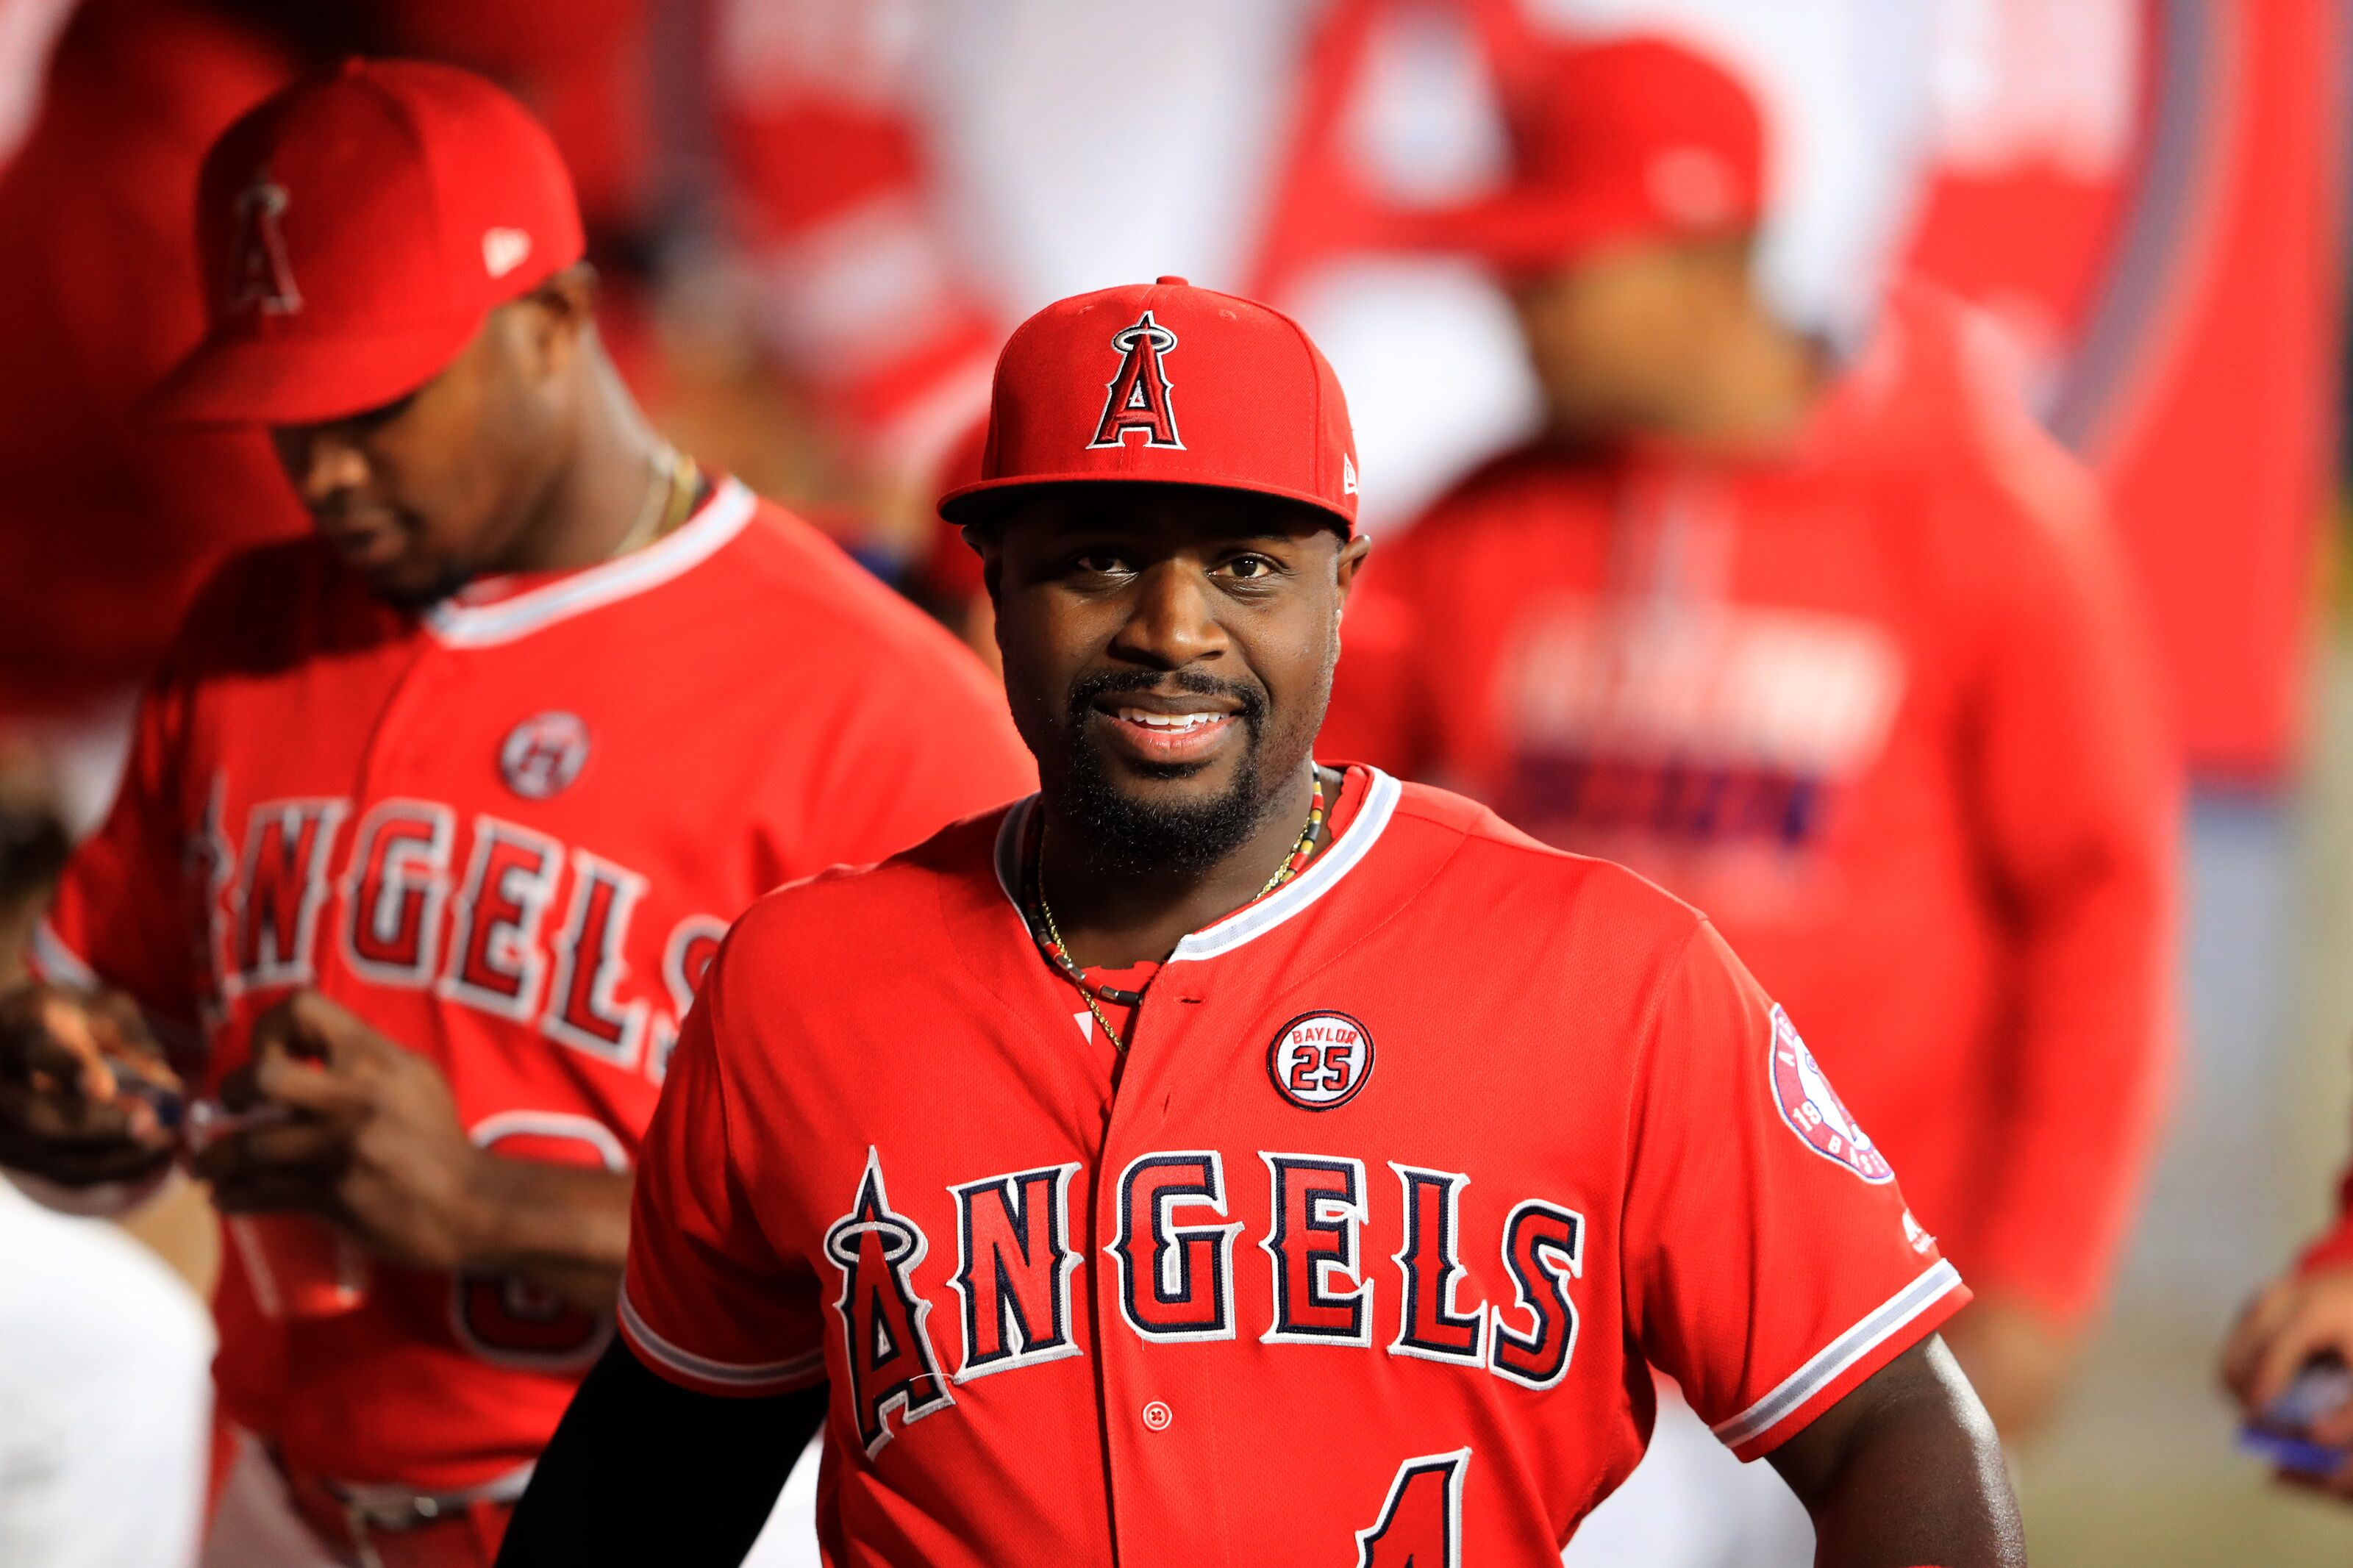 7b506f666 Red Sox infielder Brandon Phillips working his way back to majors